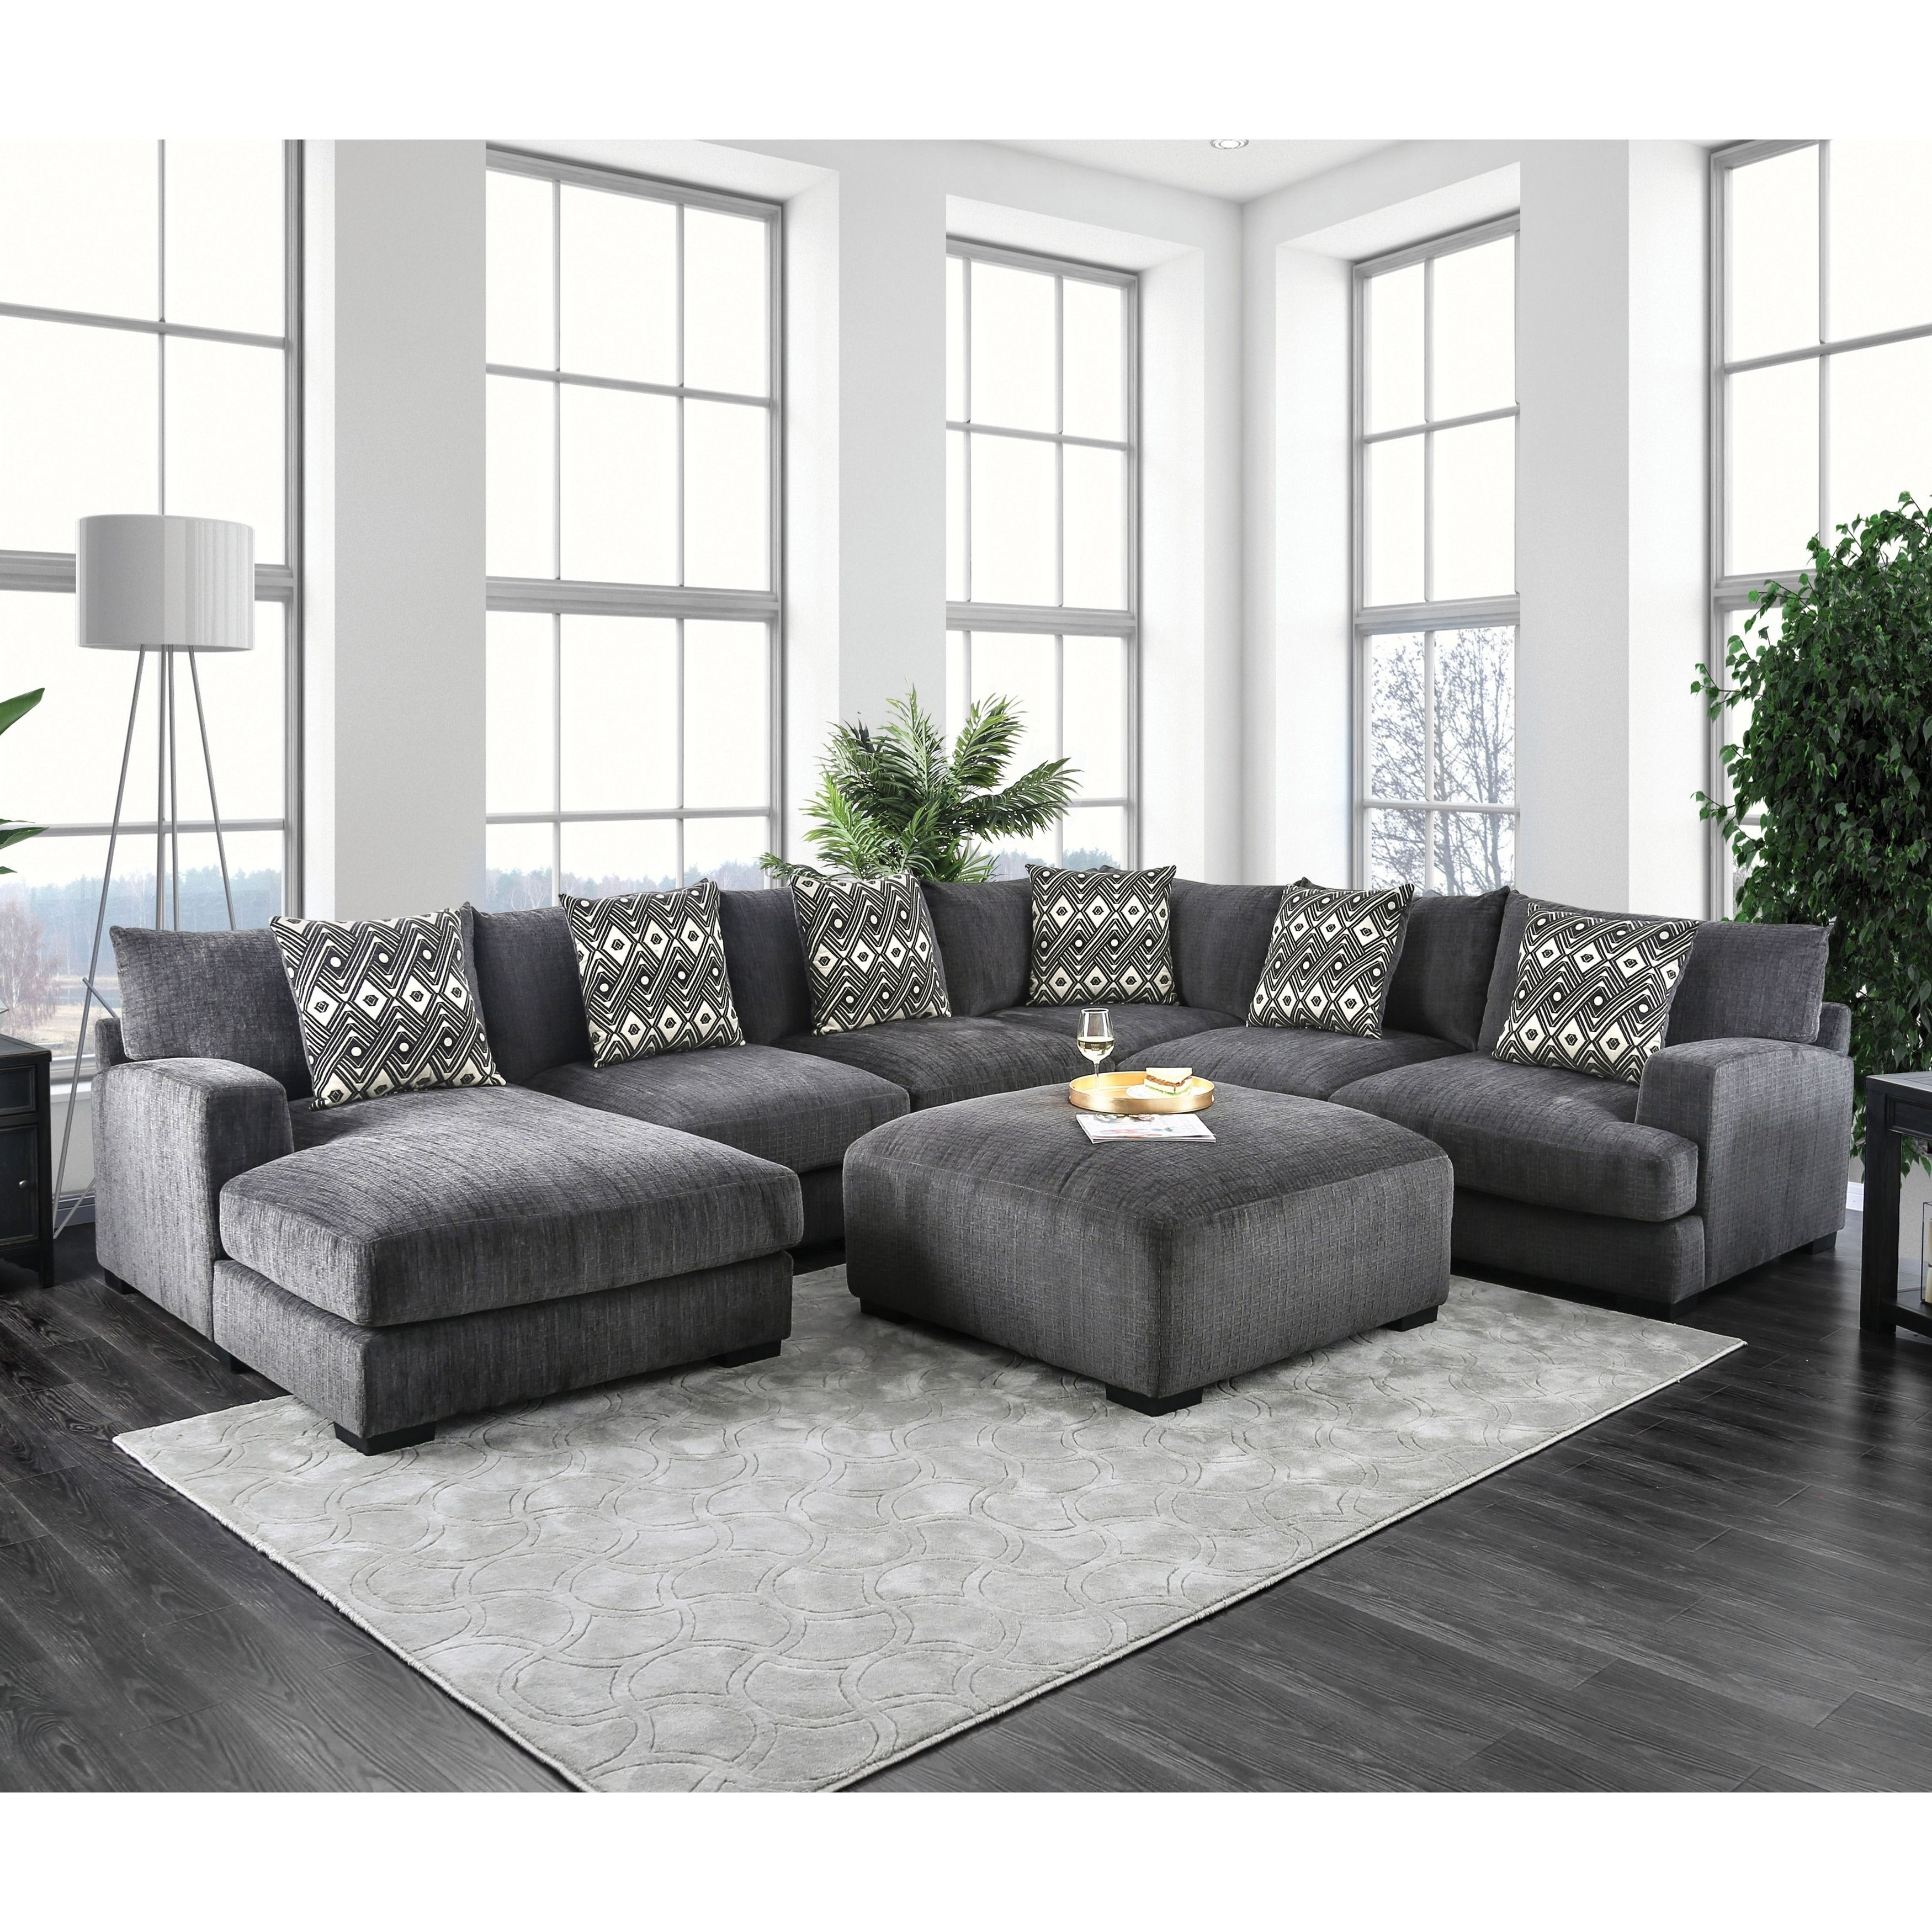 Furniture Of America Cleo Modular Grey Microfiber Chenille Sectional Fabric Living Room Sectional U Shaped Sectional Sofa Sectional Sofa